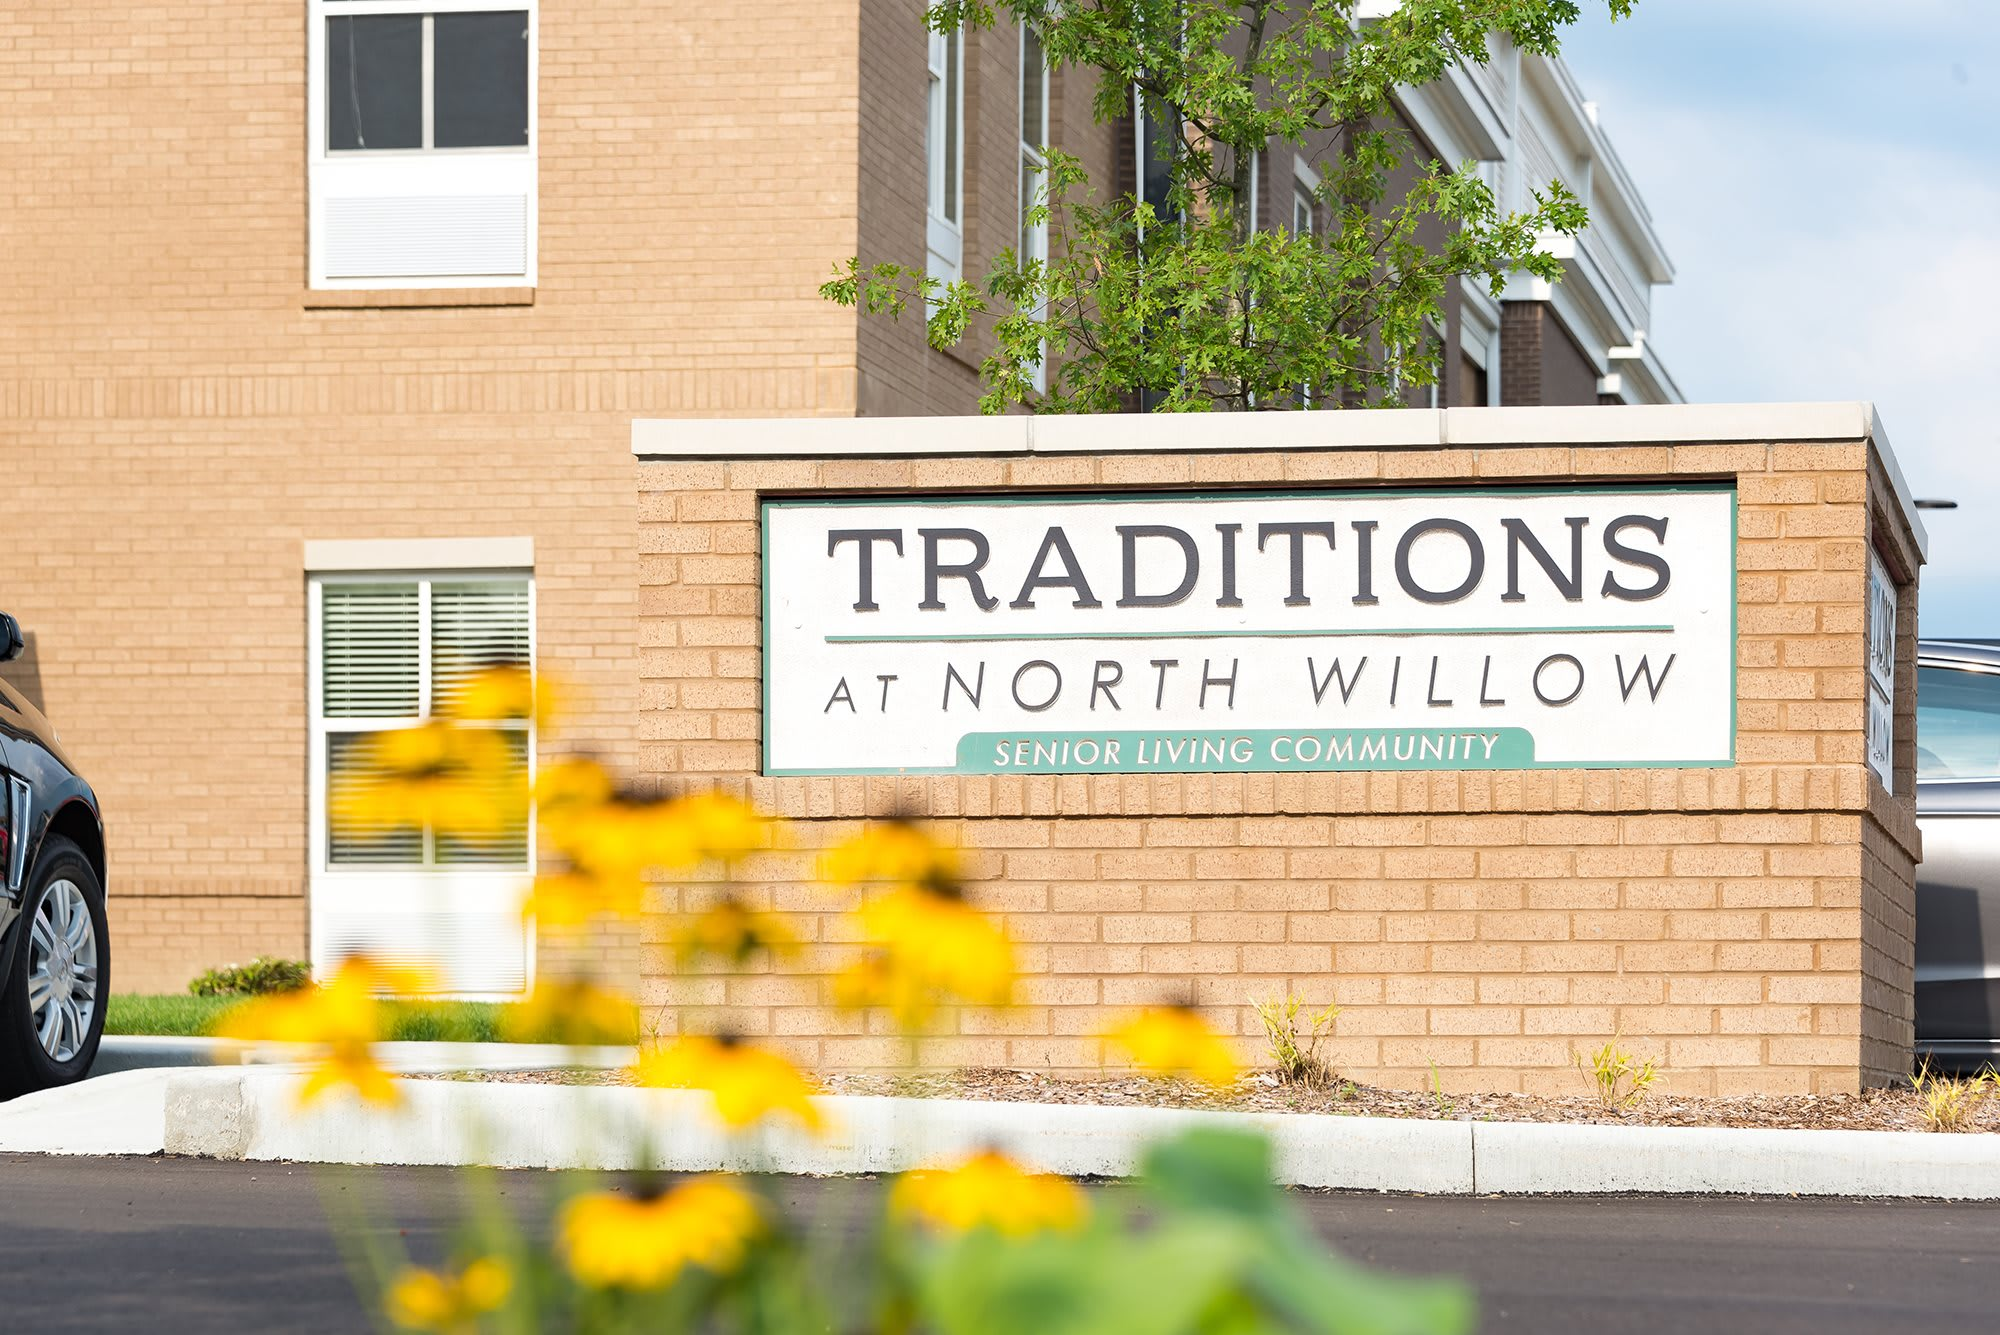 Photo 1 of Traditions at North Willow